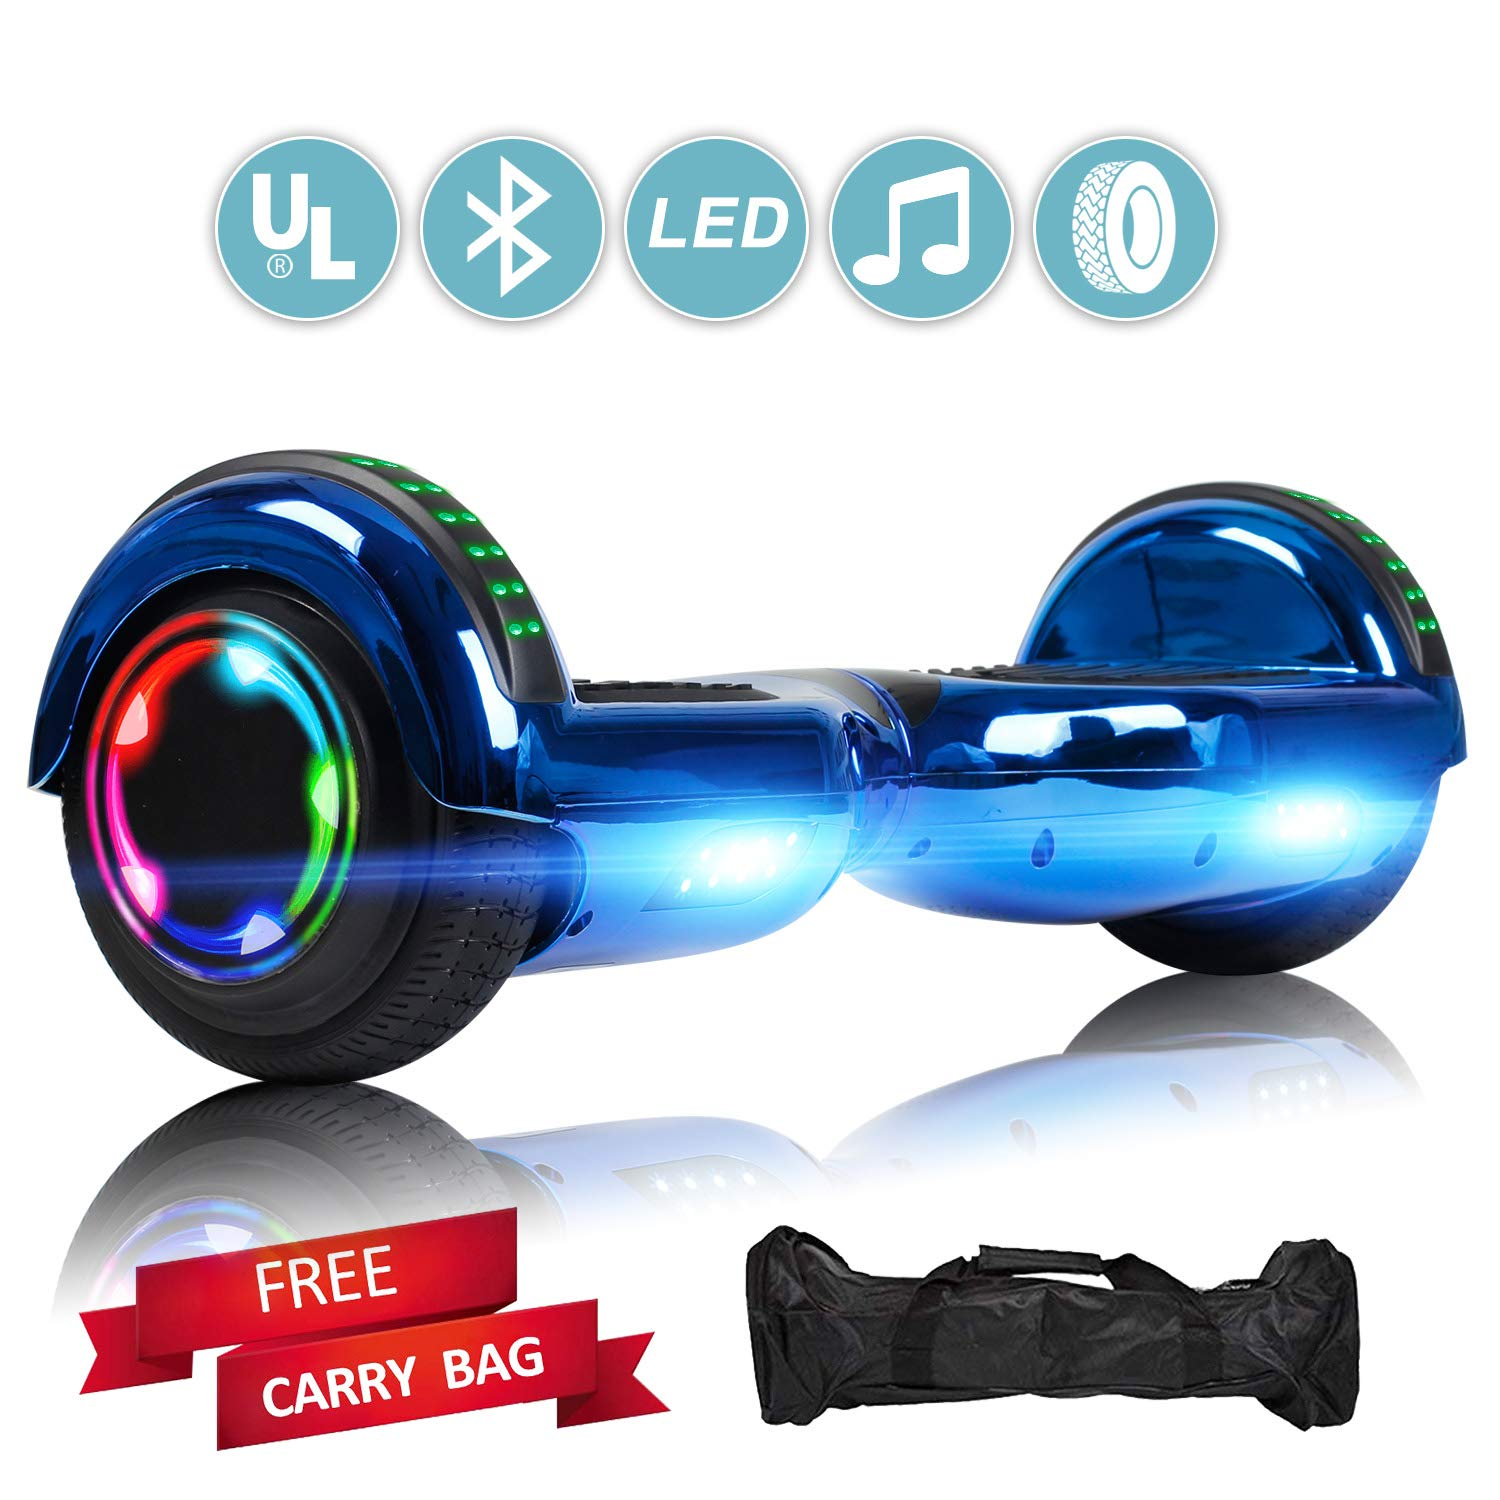 Sea Eagle Hoverboard with Bluetooth Self Balancing Scooter Hover Board for Kids Adults with UL2272 Certified, Wheels LED Lights(Chrome Blue) by Sea Eagle